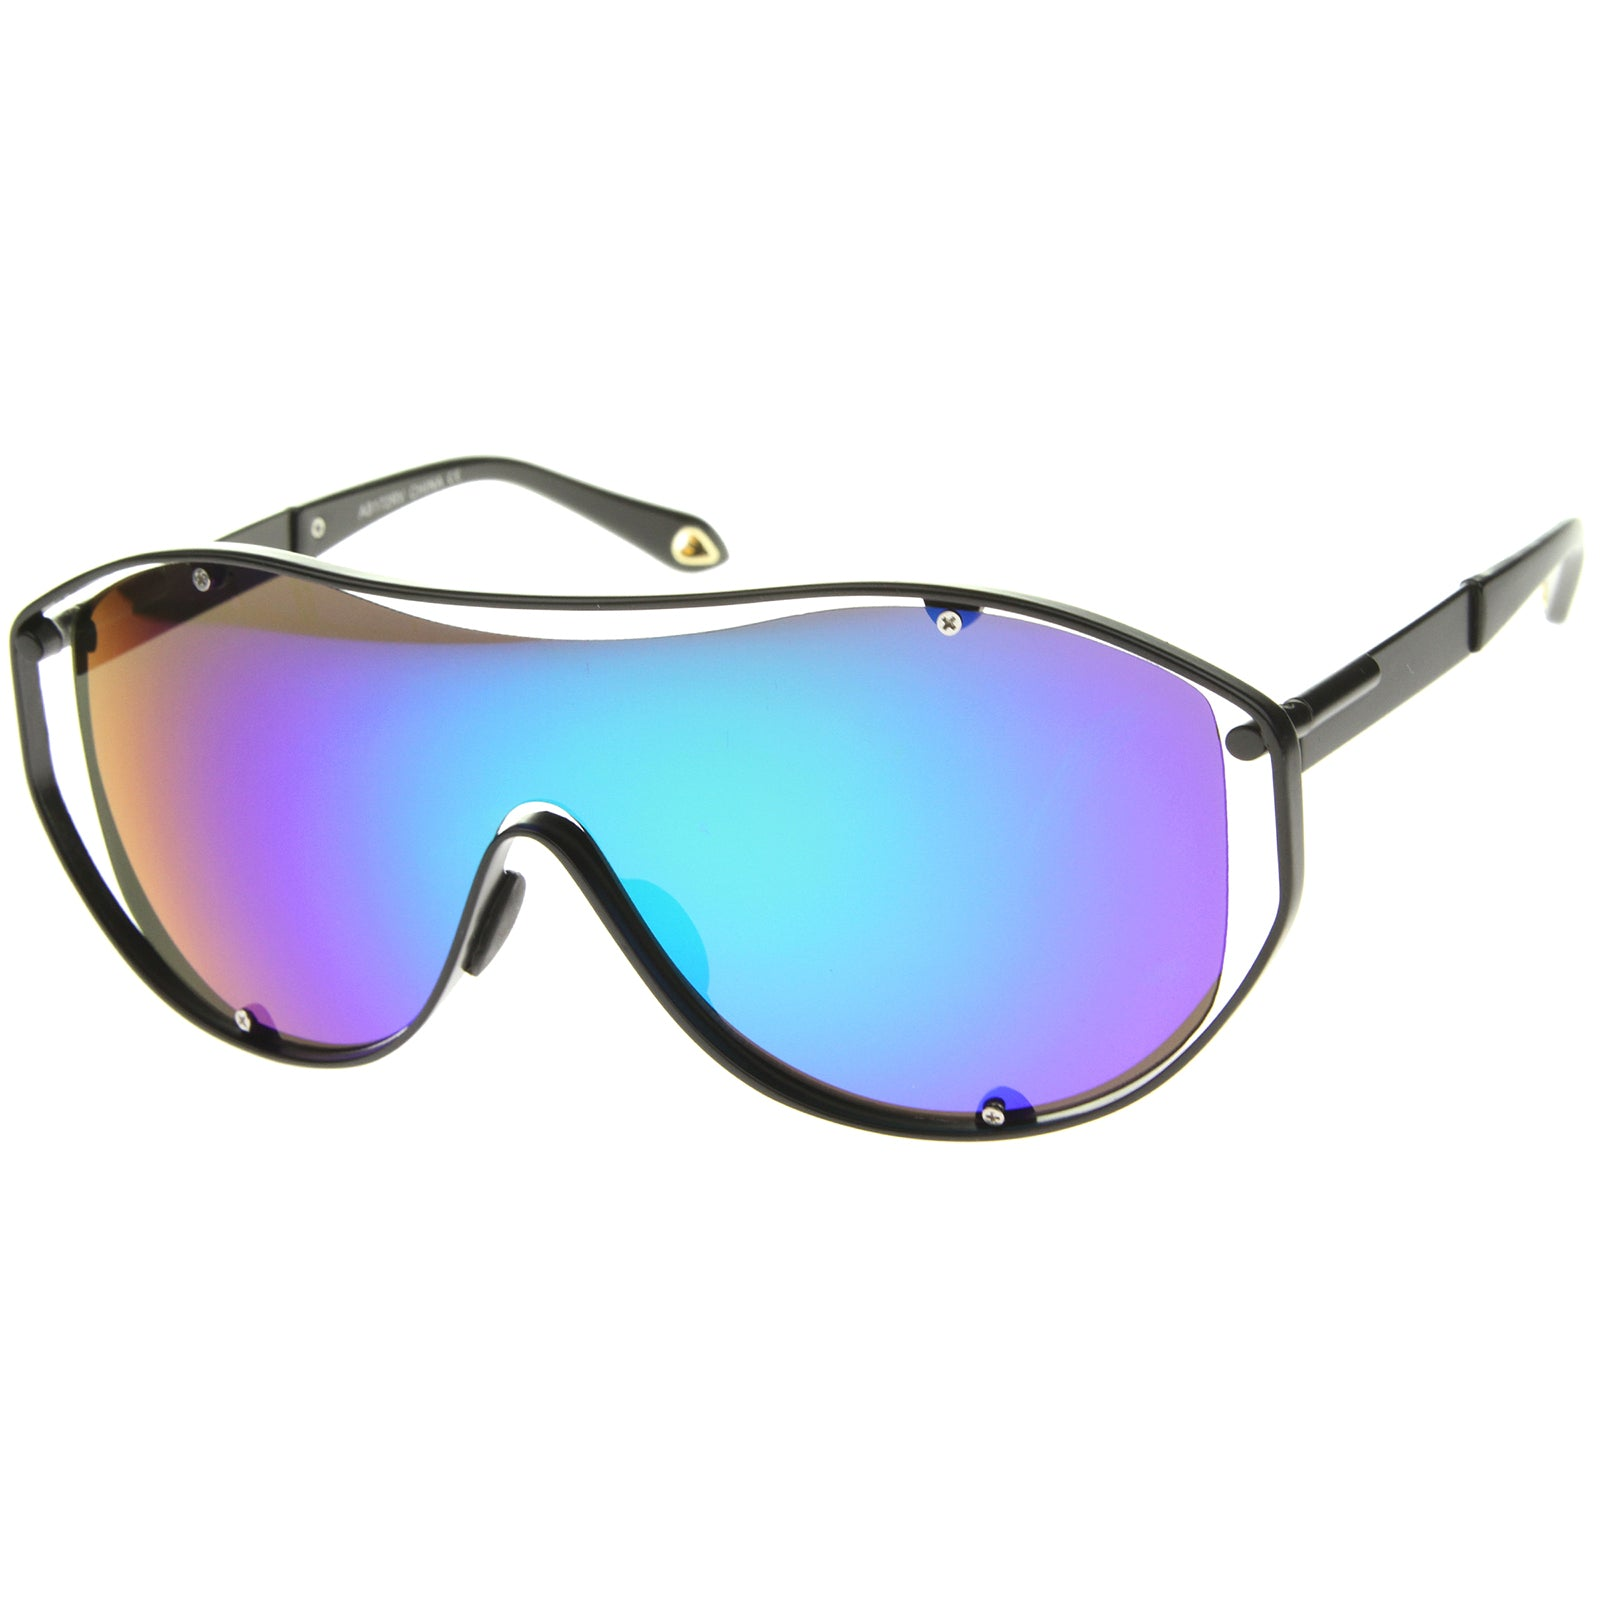 Modern Fashion Metal Frame Inner Rimless Mirror Lens Shield Sunglasses - sunglass.la - 2